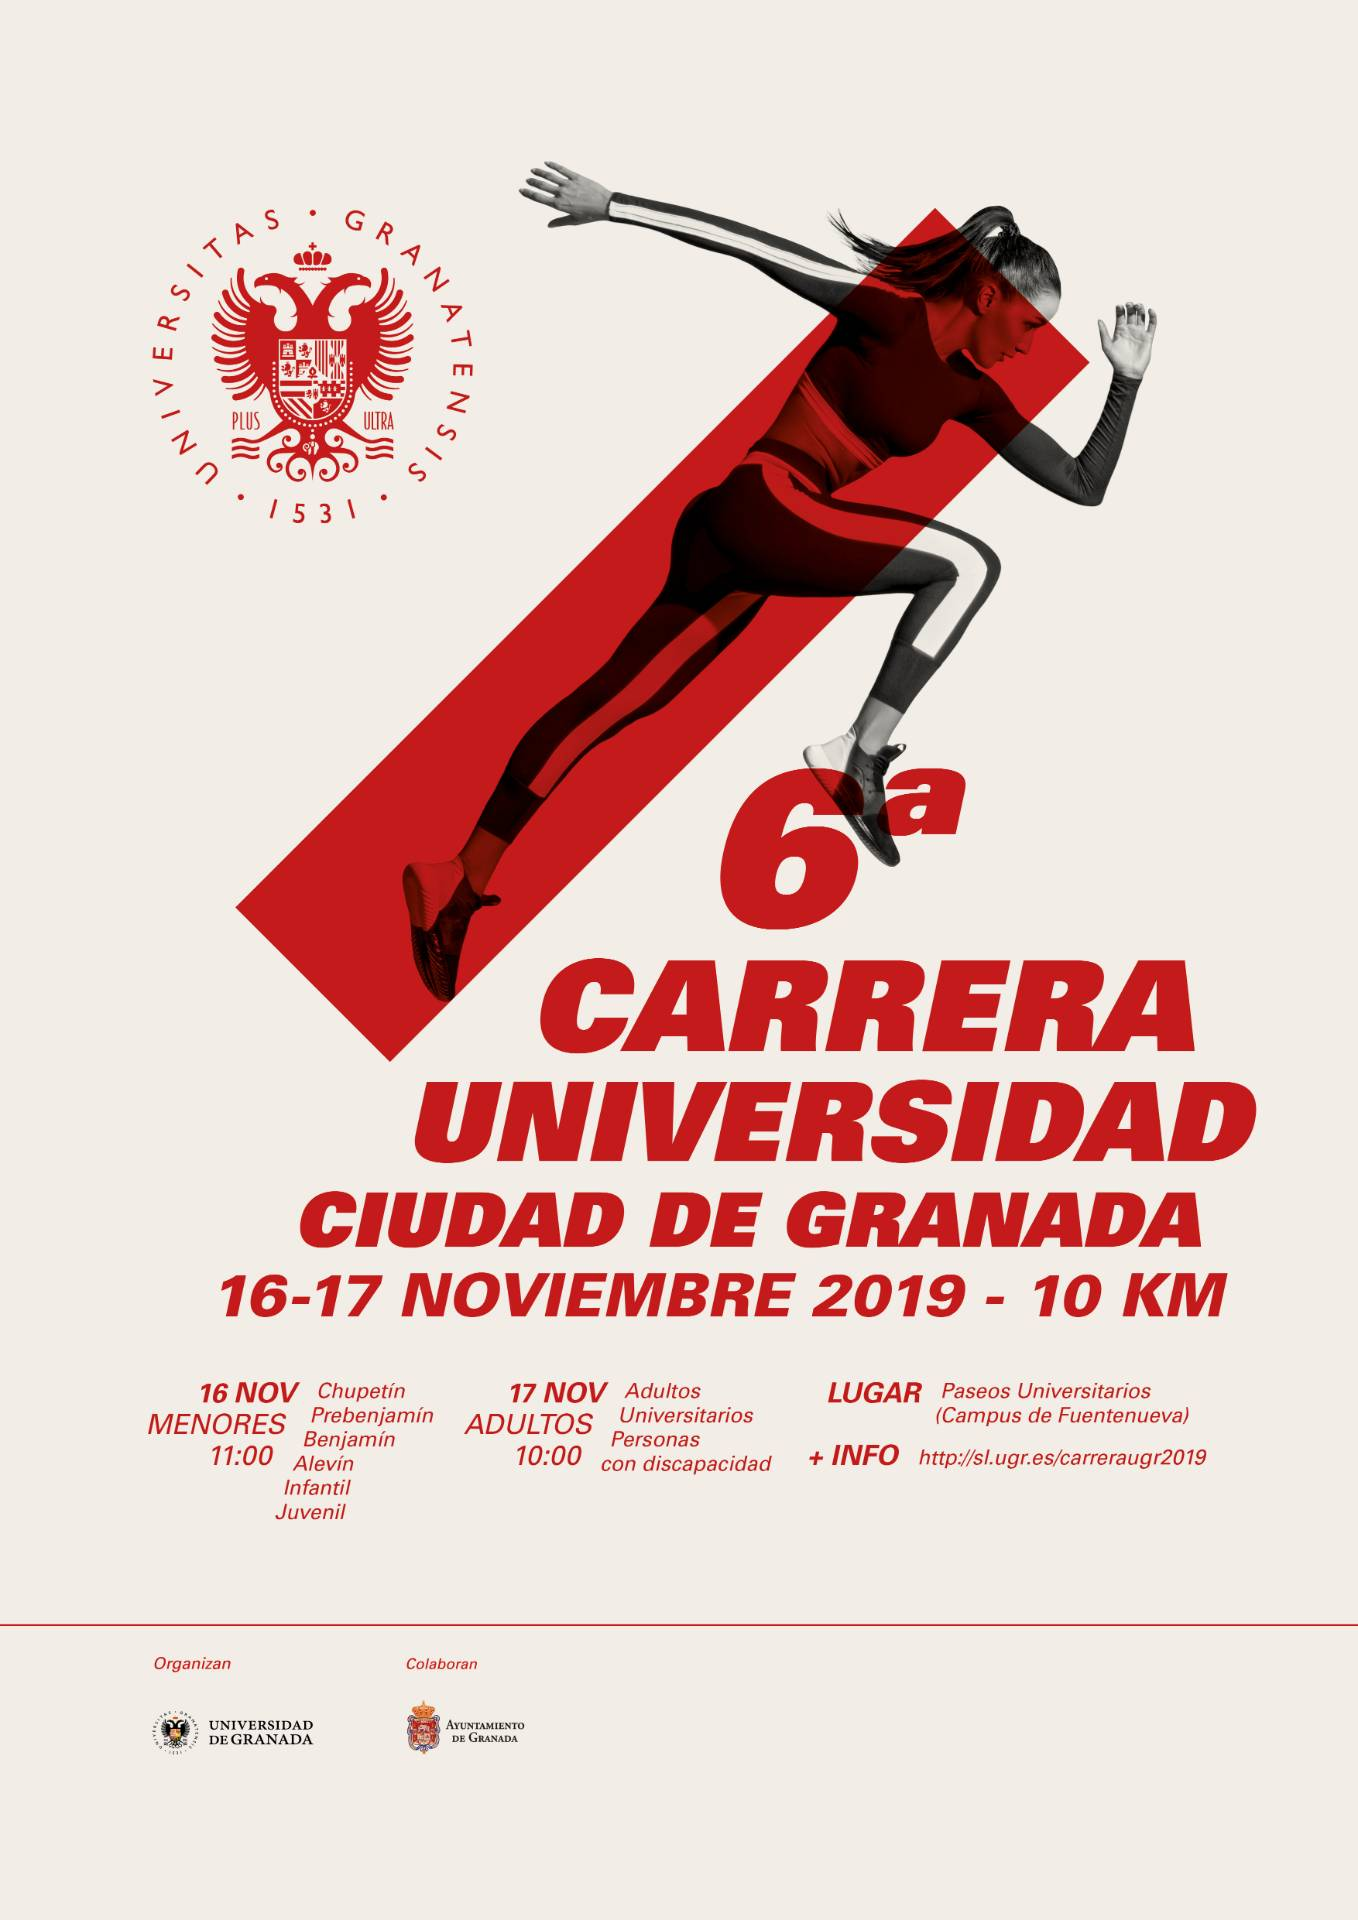 Carrera Granada Universidad